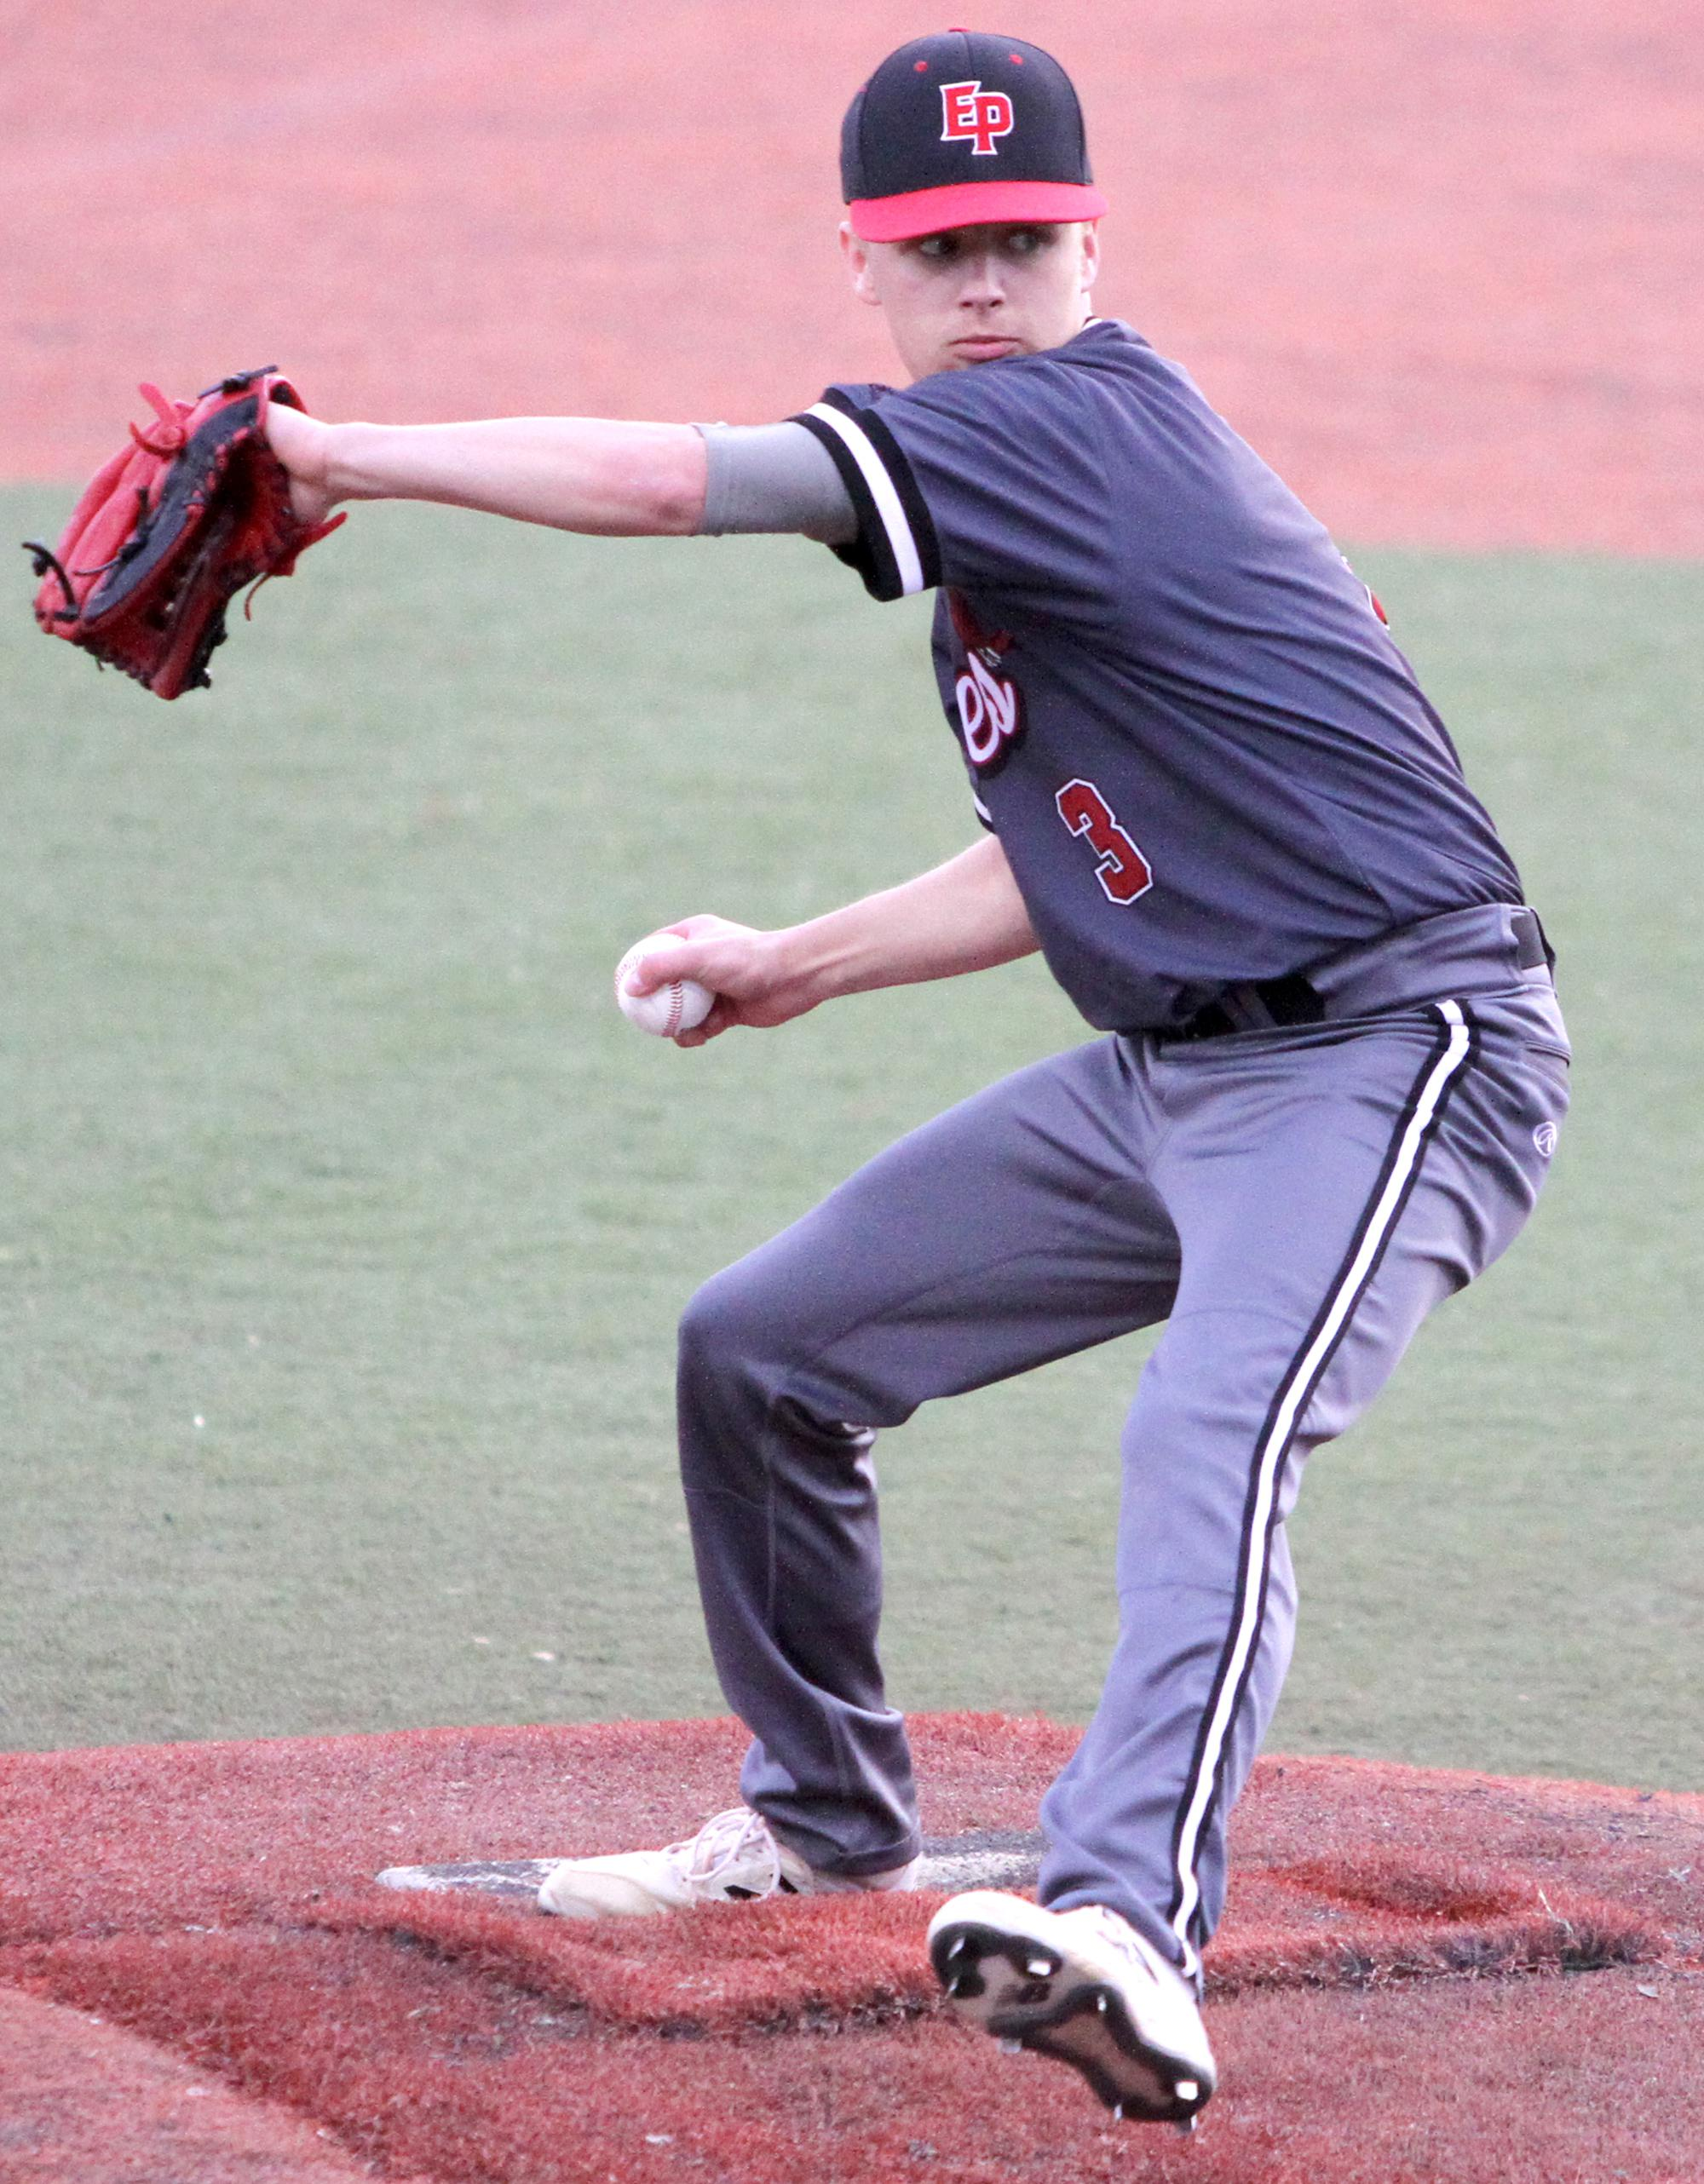 Eden Prairie righthander Tyson Stritesky shut out Minnetonka, allowing just two base runners in six-plus innings of work while collecting 11 strikeouts. Photo by Drew Herron, SportsEngine